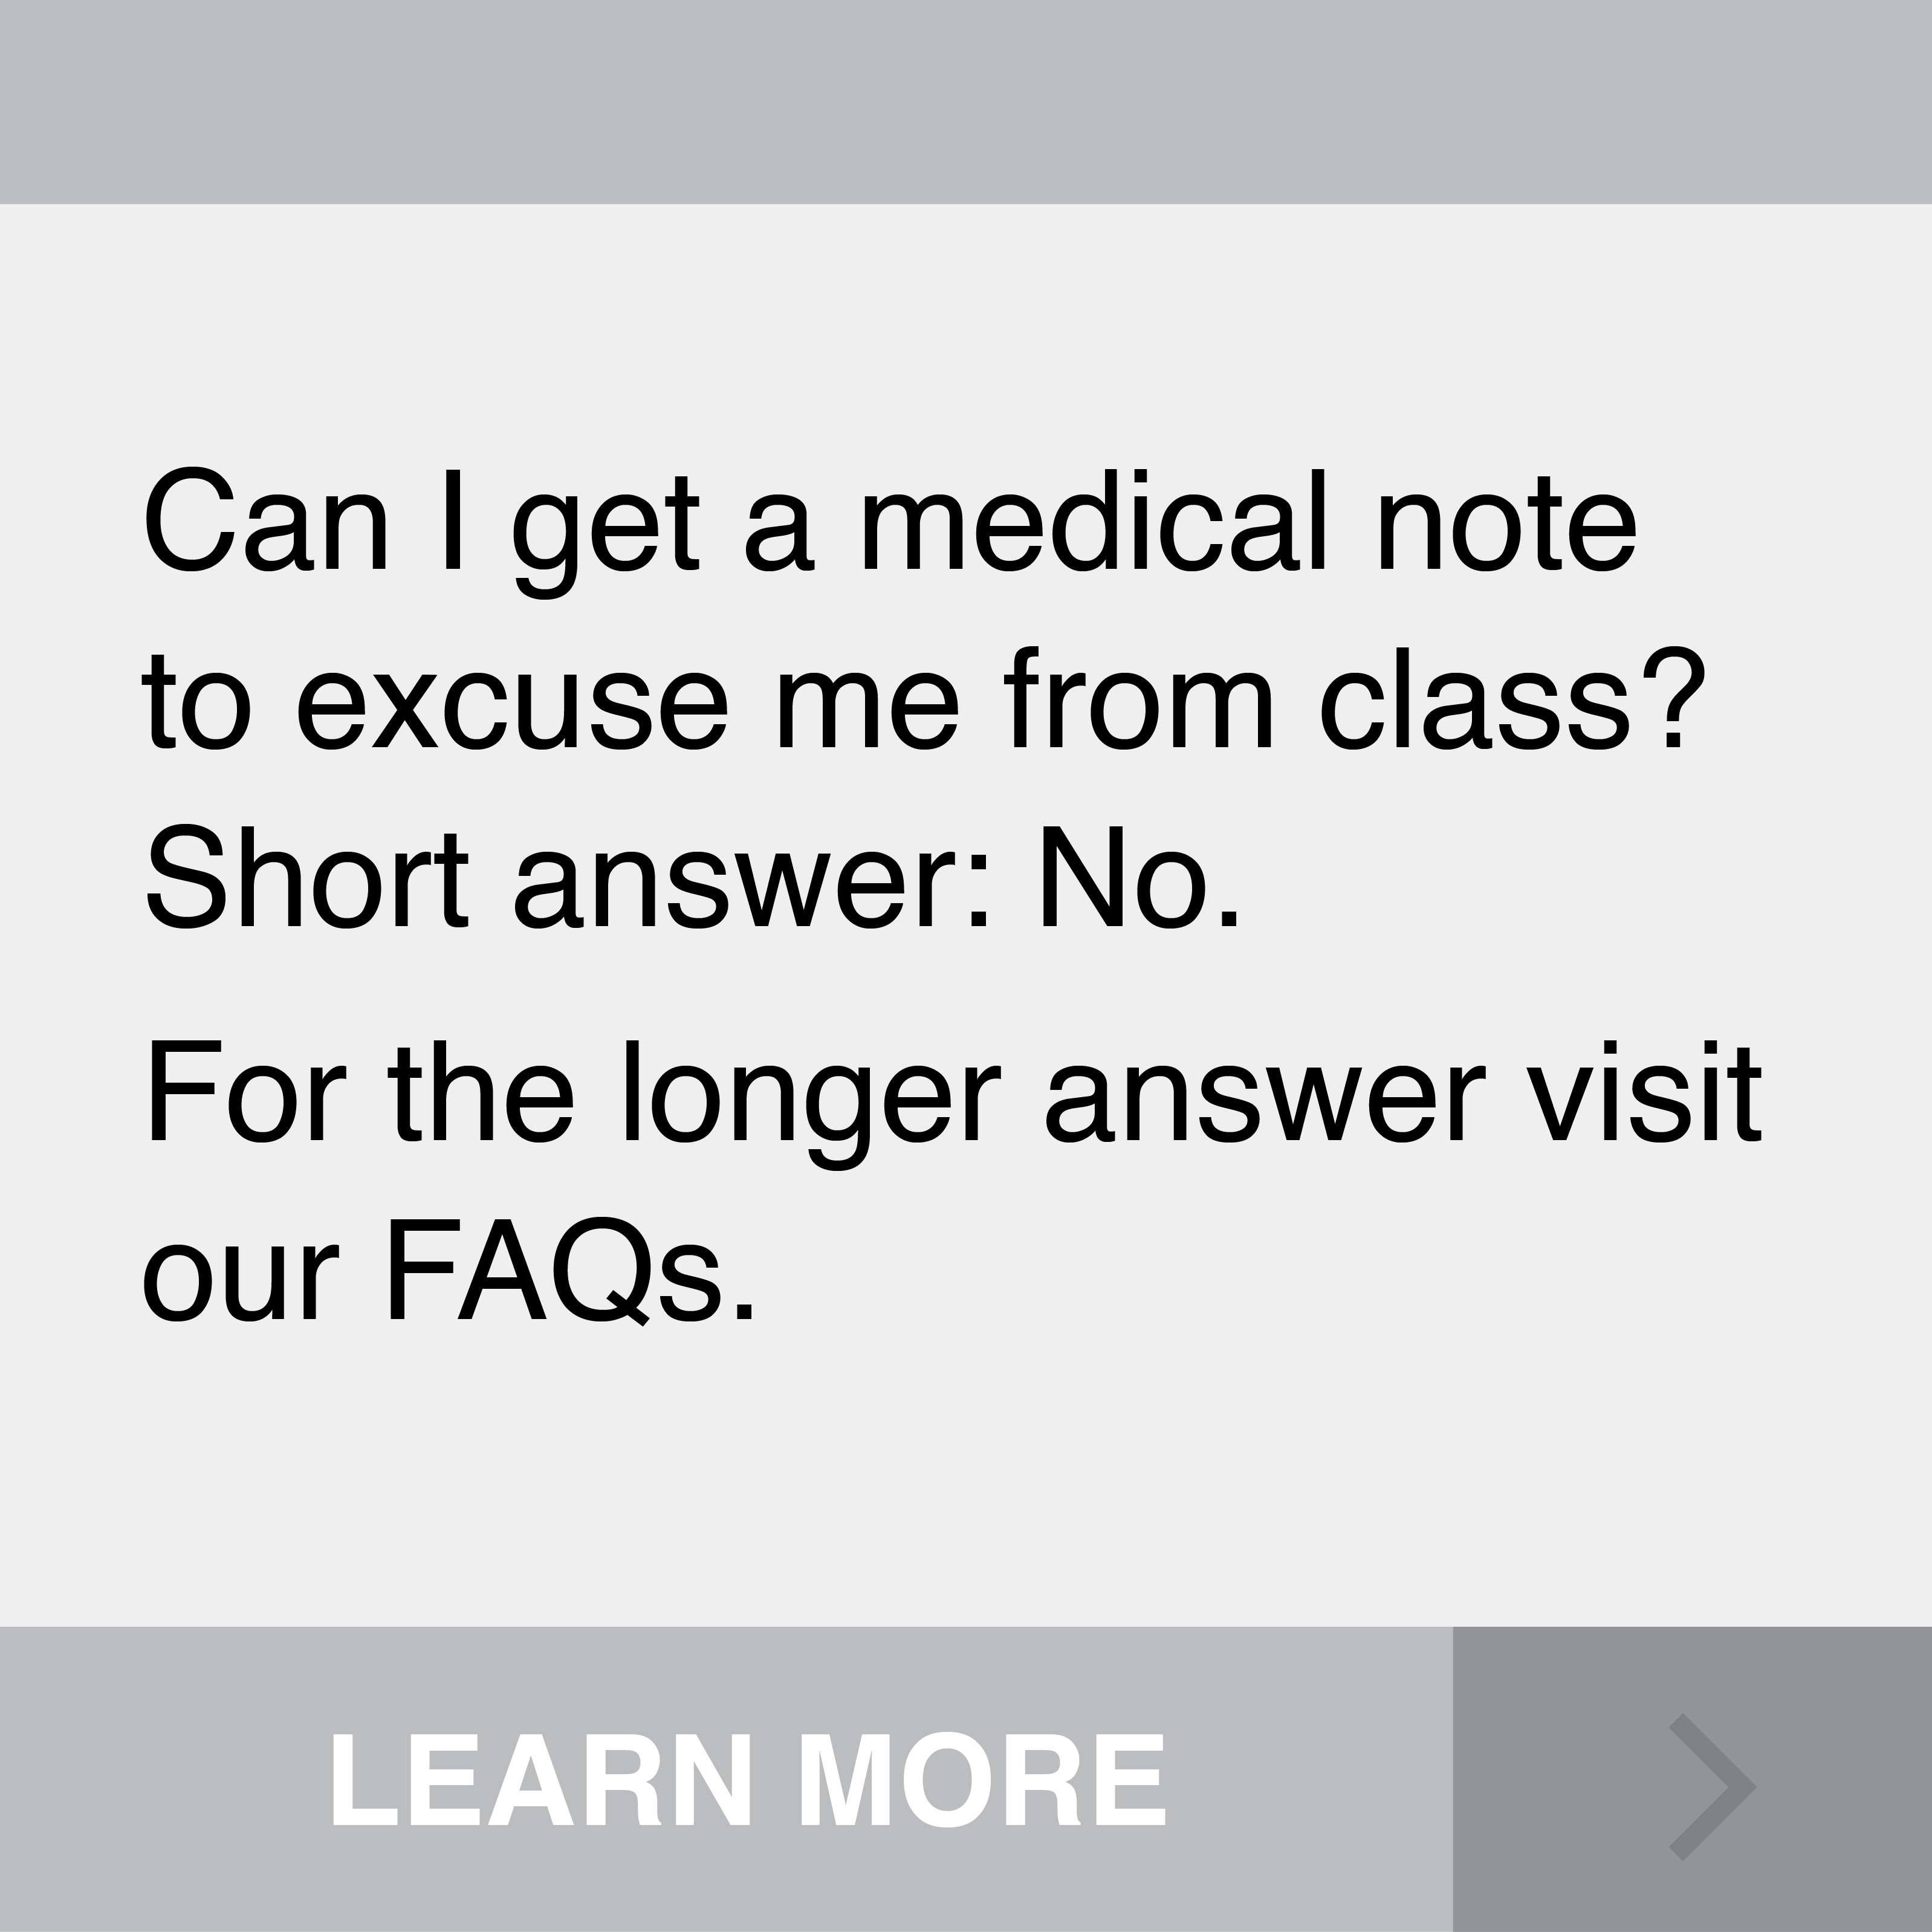 Can I get a medical note to excuse me from class? Short answer: No. For the longer answer visit our FAQs. Click to Learn More.